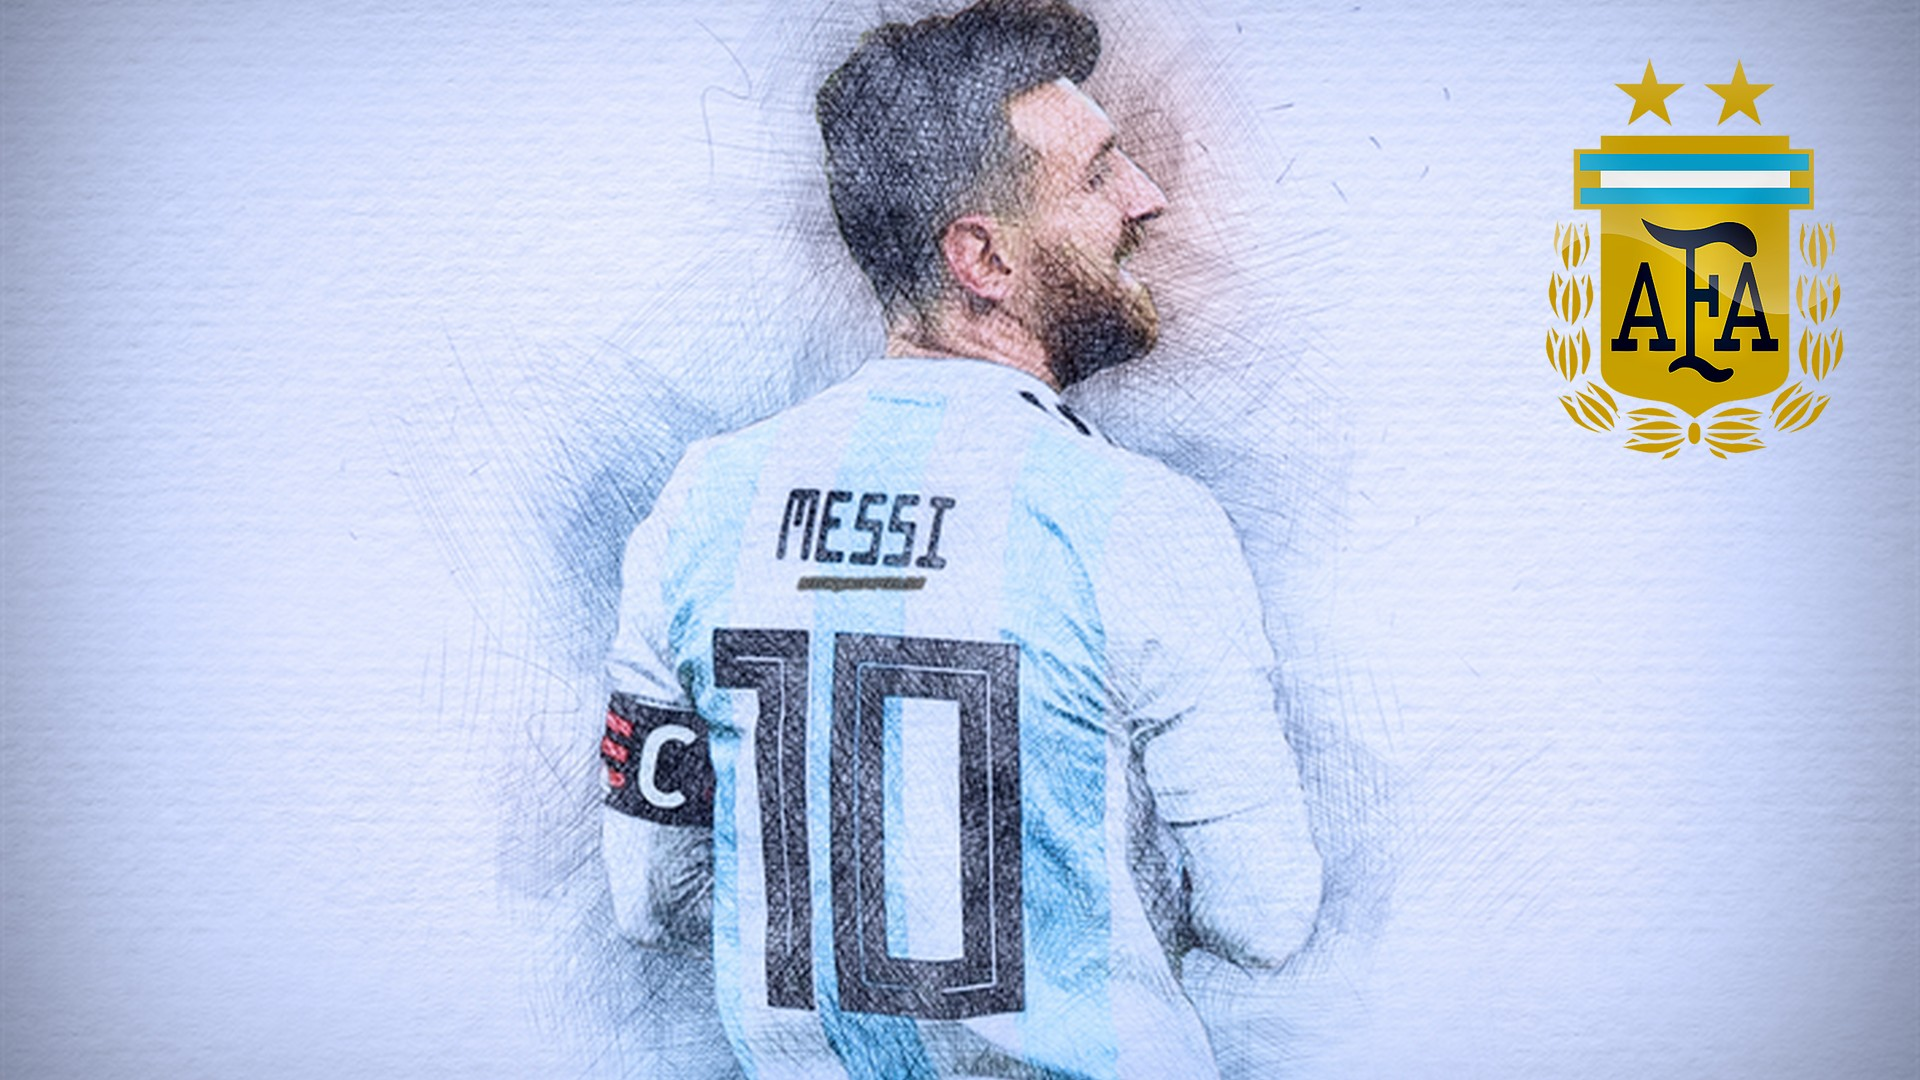 Best Messi Argentina Wallpaper With Image Resolution - Messi Desktop Wallpaper 2019 , HD Wallpaper & Backgrounds